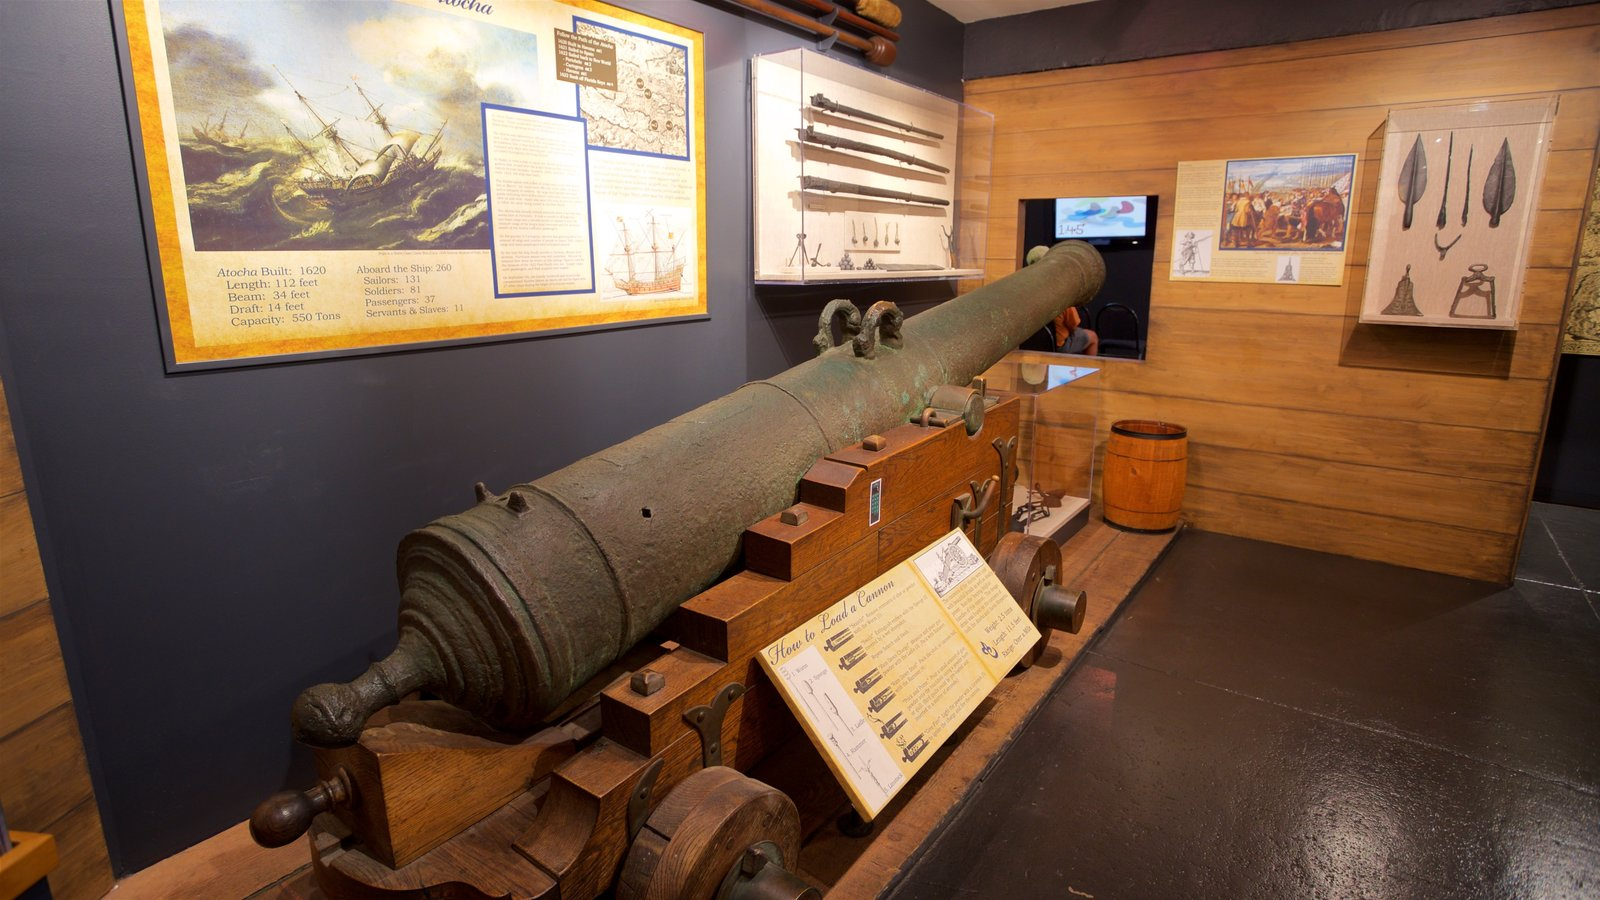 Key West which includes military items, heritage elements and interior views